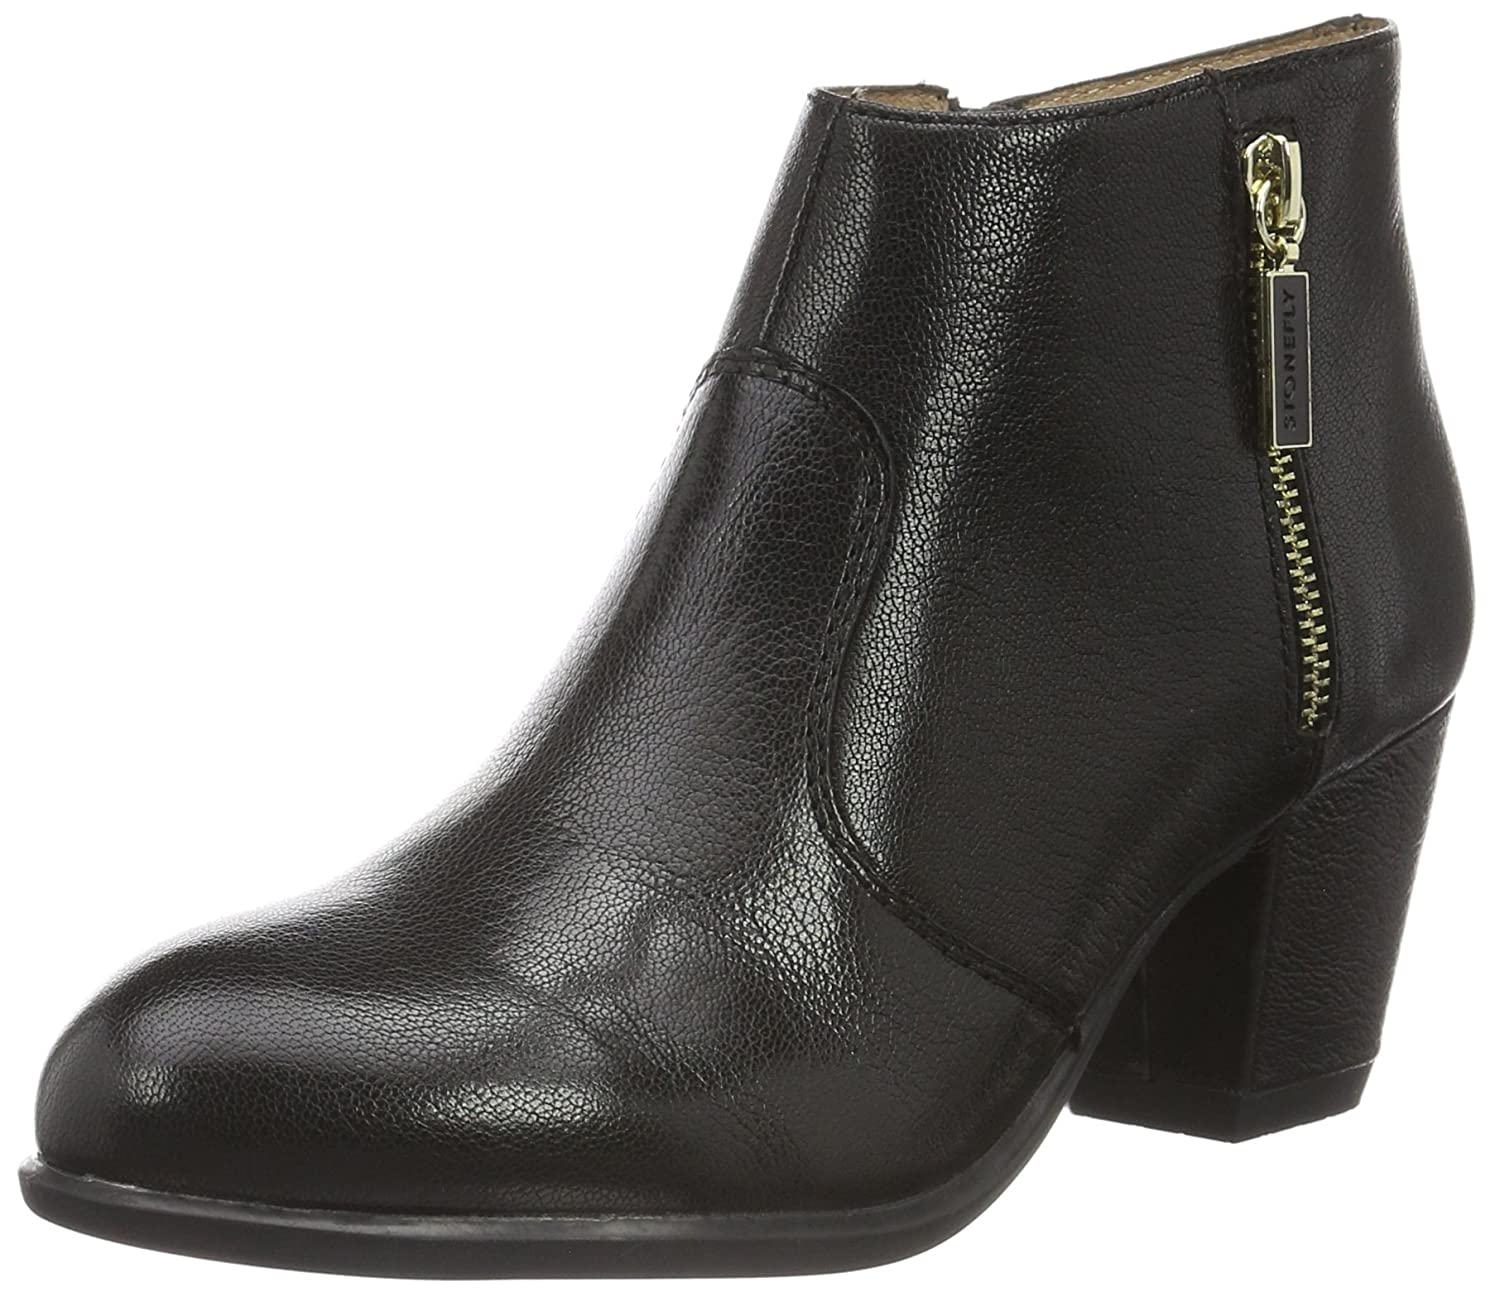 50926892ca Stonefly Women s Macy 3 Ankle Boots  Amazon.co.uk  Shoes   Bags